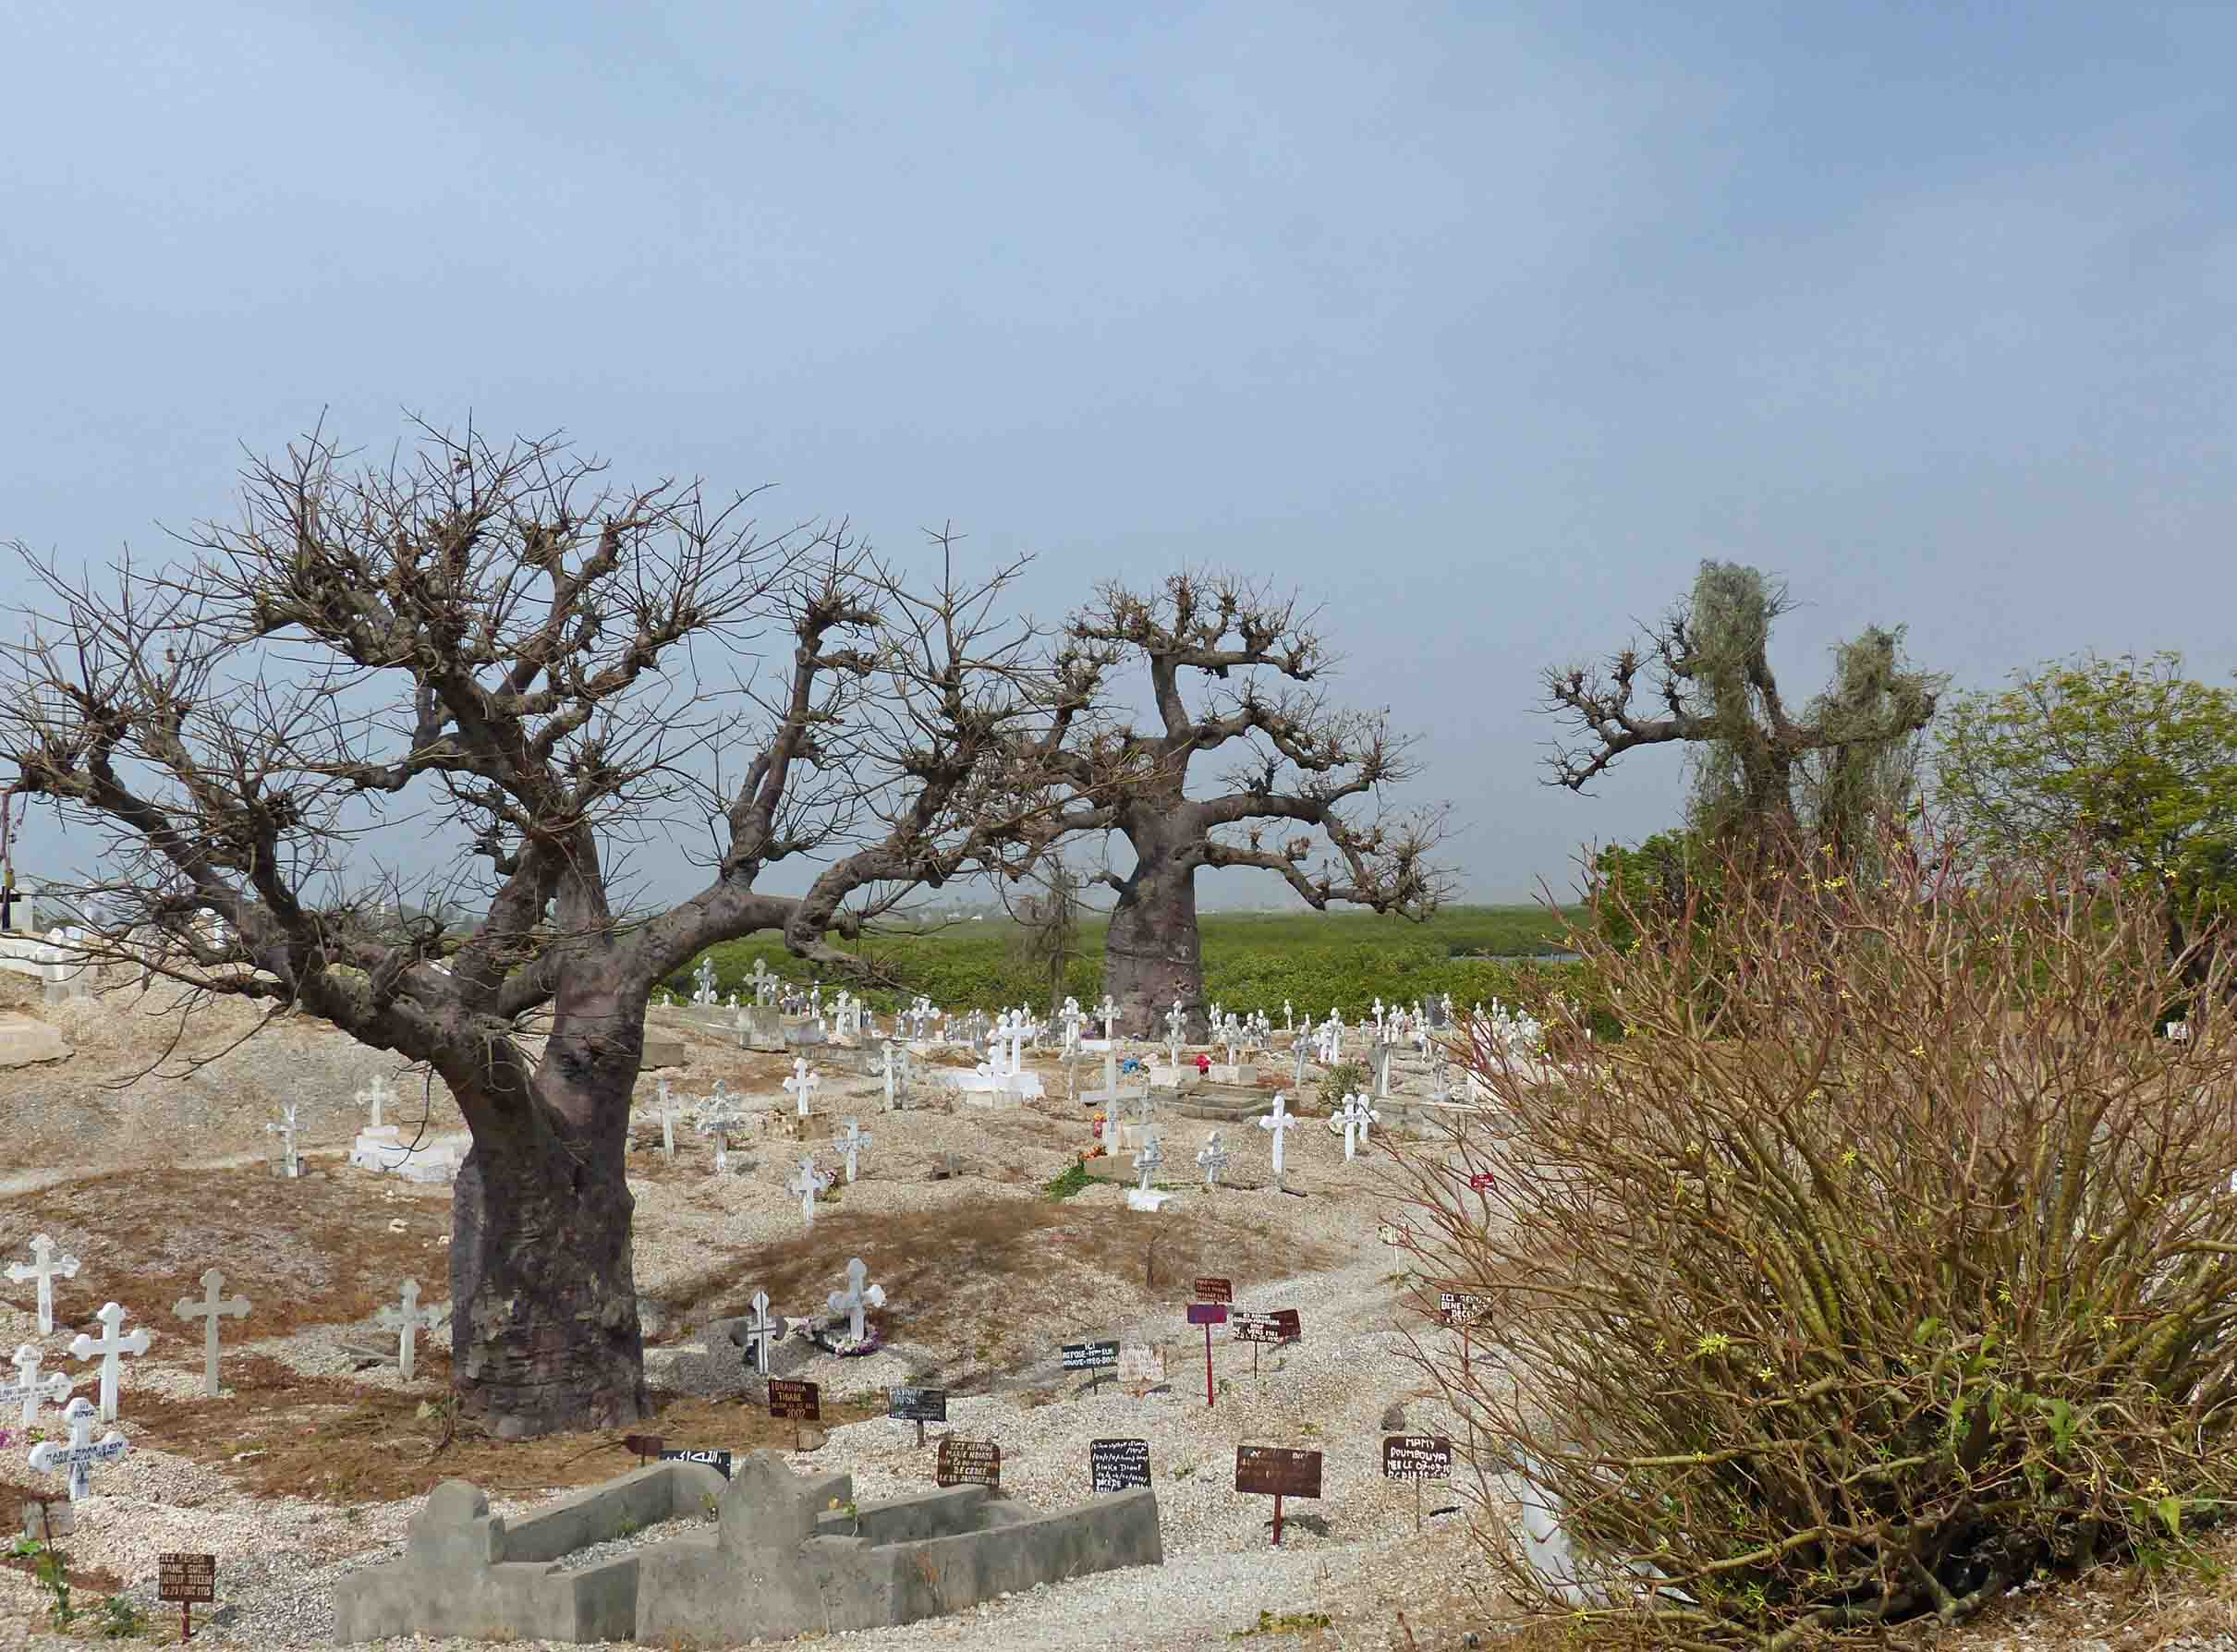 Cemetery on an island with banyan trees